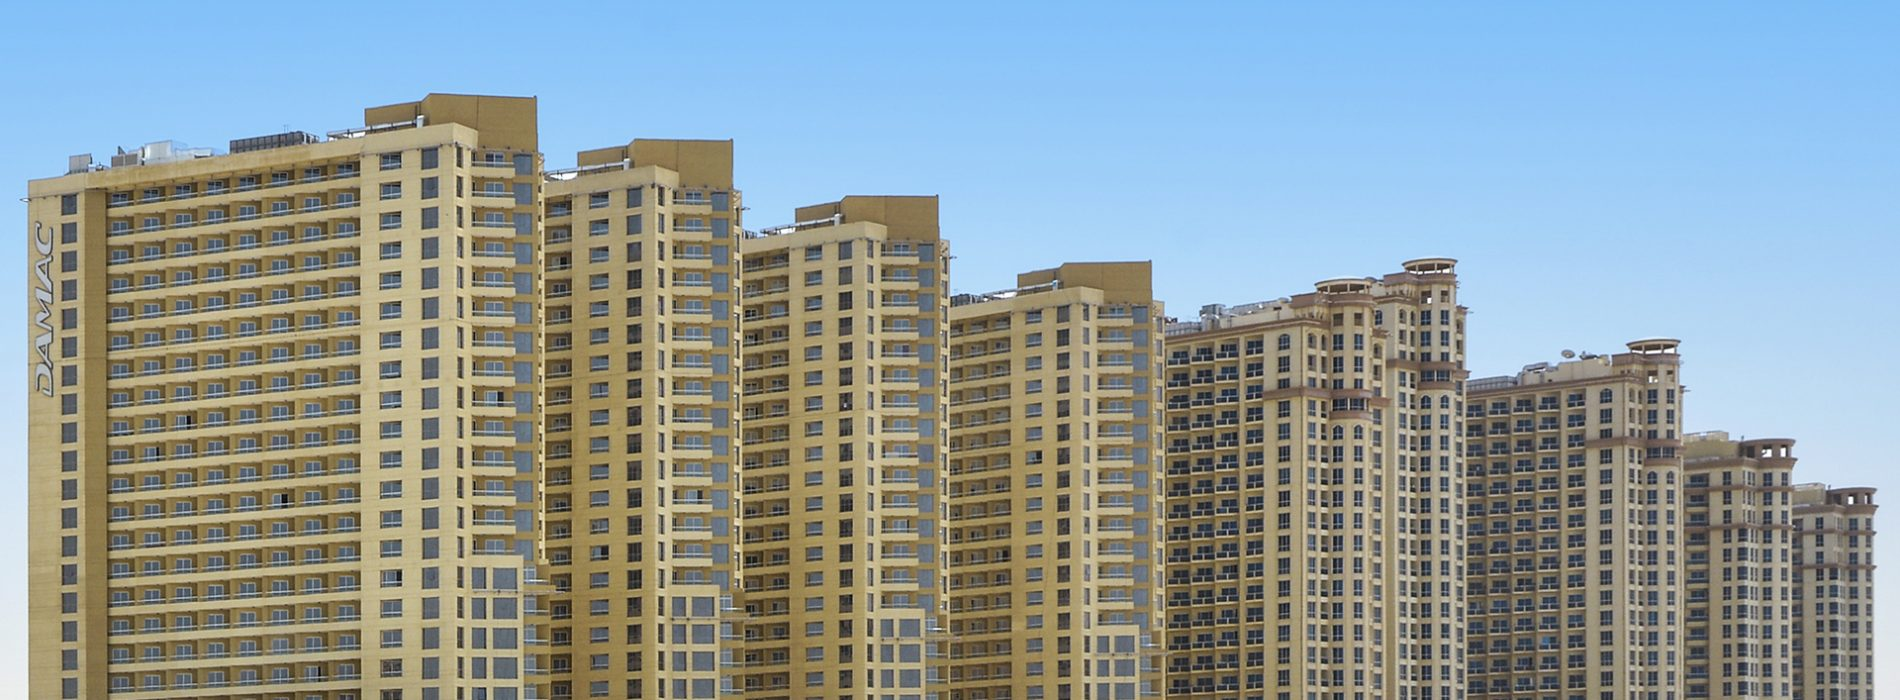 Dubai's inexpensive residential communities